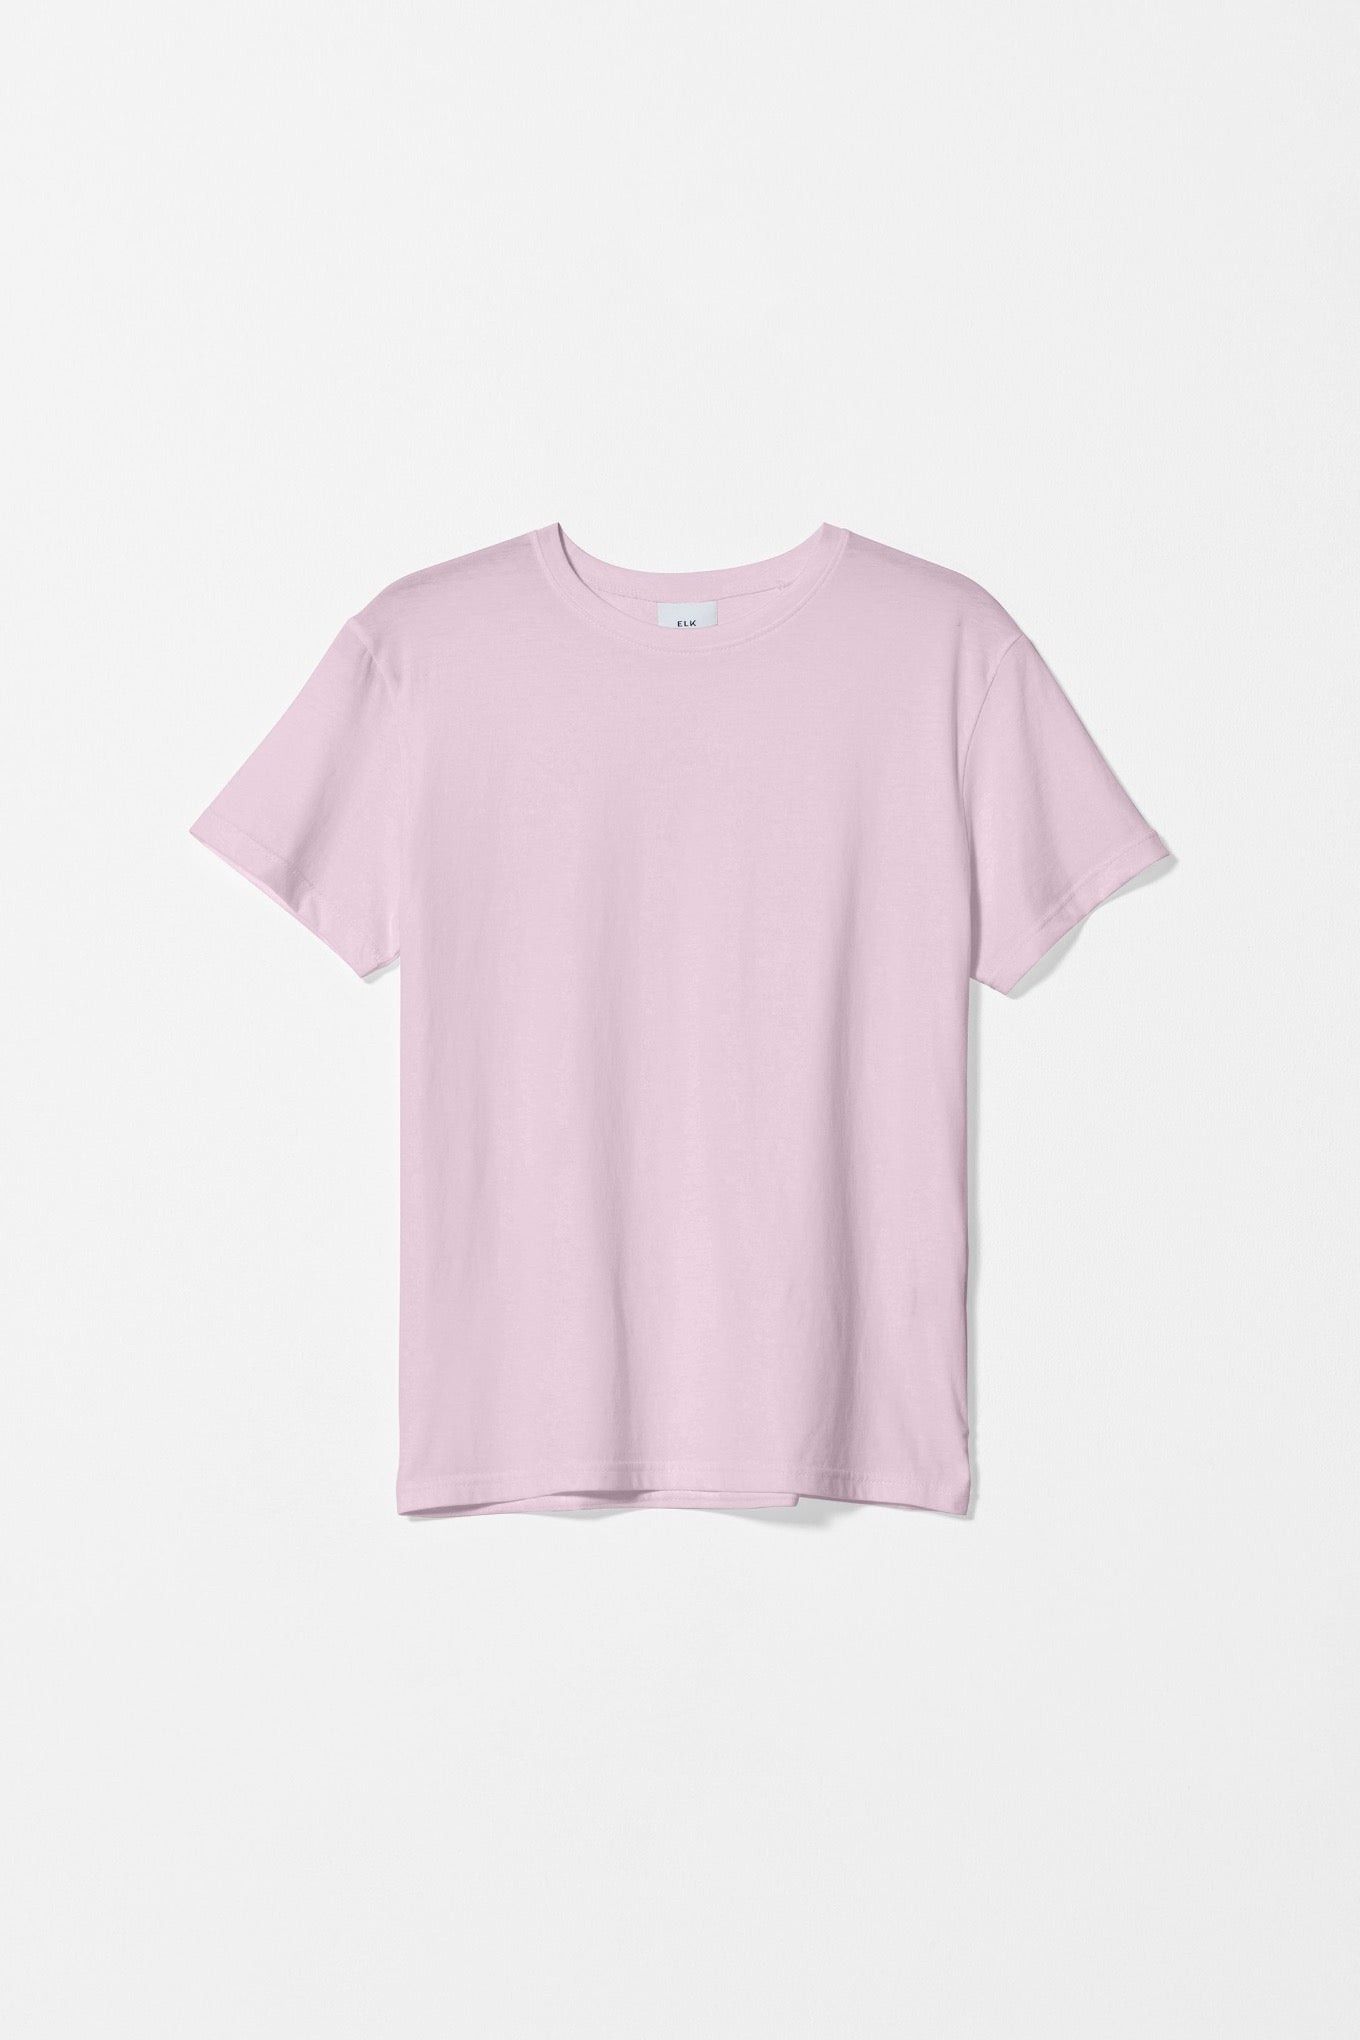 Elk Henning tee t-shirt in organic cotton, rose pink.